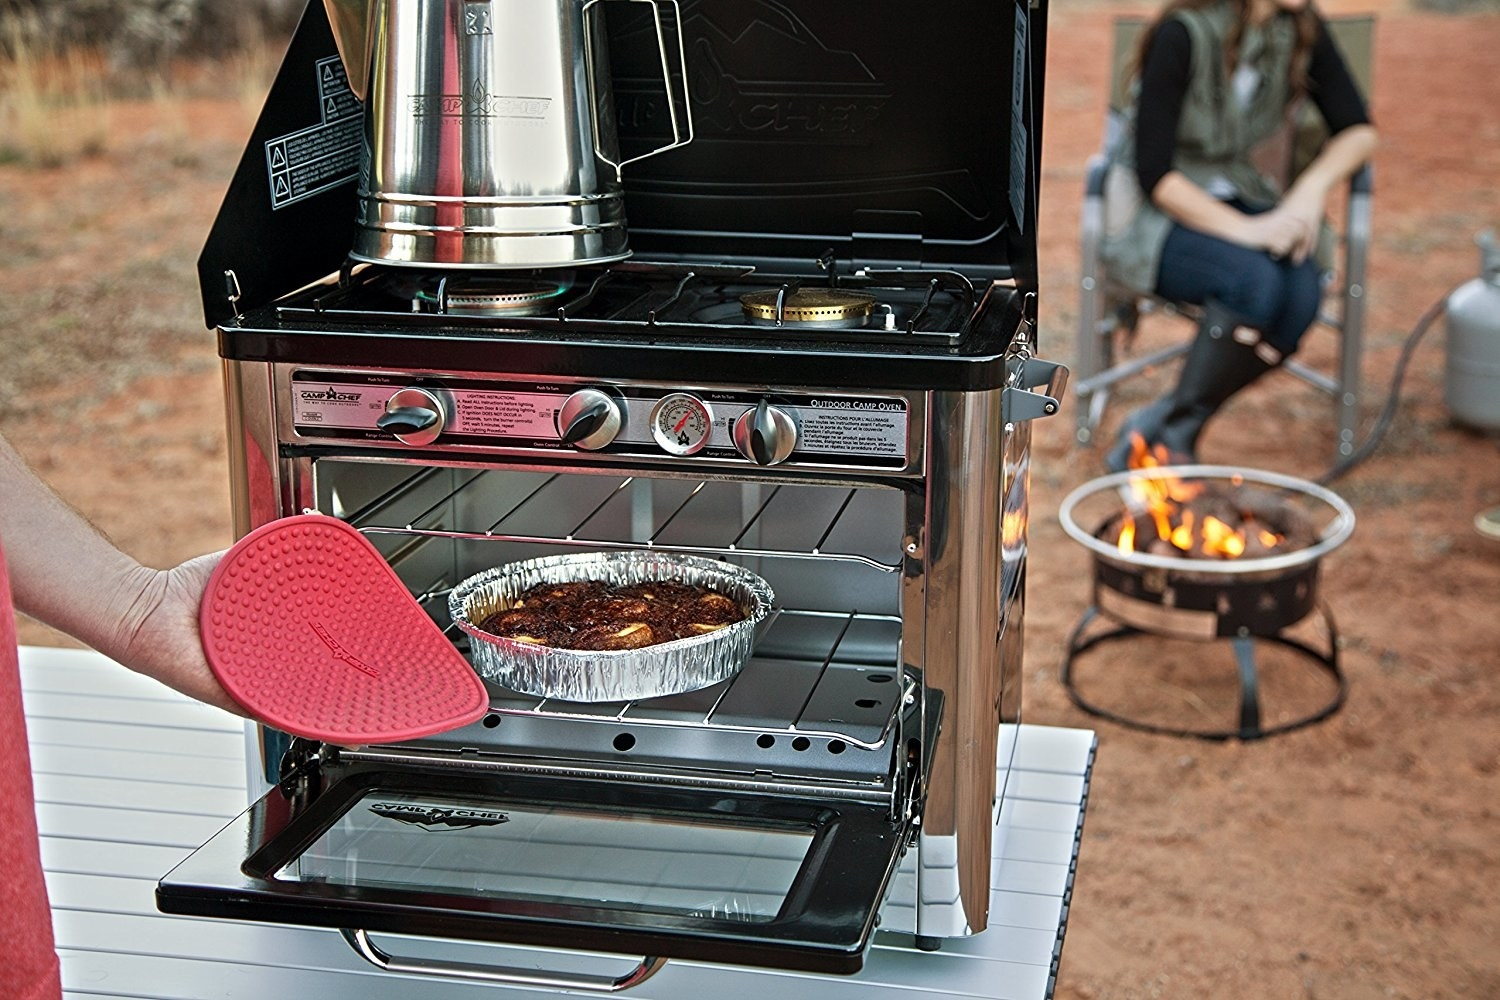 The oven on a camp table; there's coffee on the stove and the oven's open to show a tray of cinnamon rolls